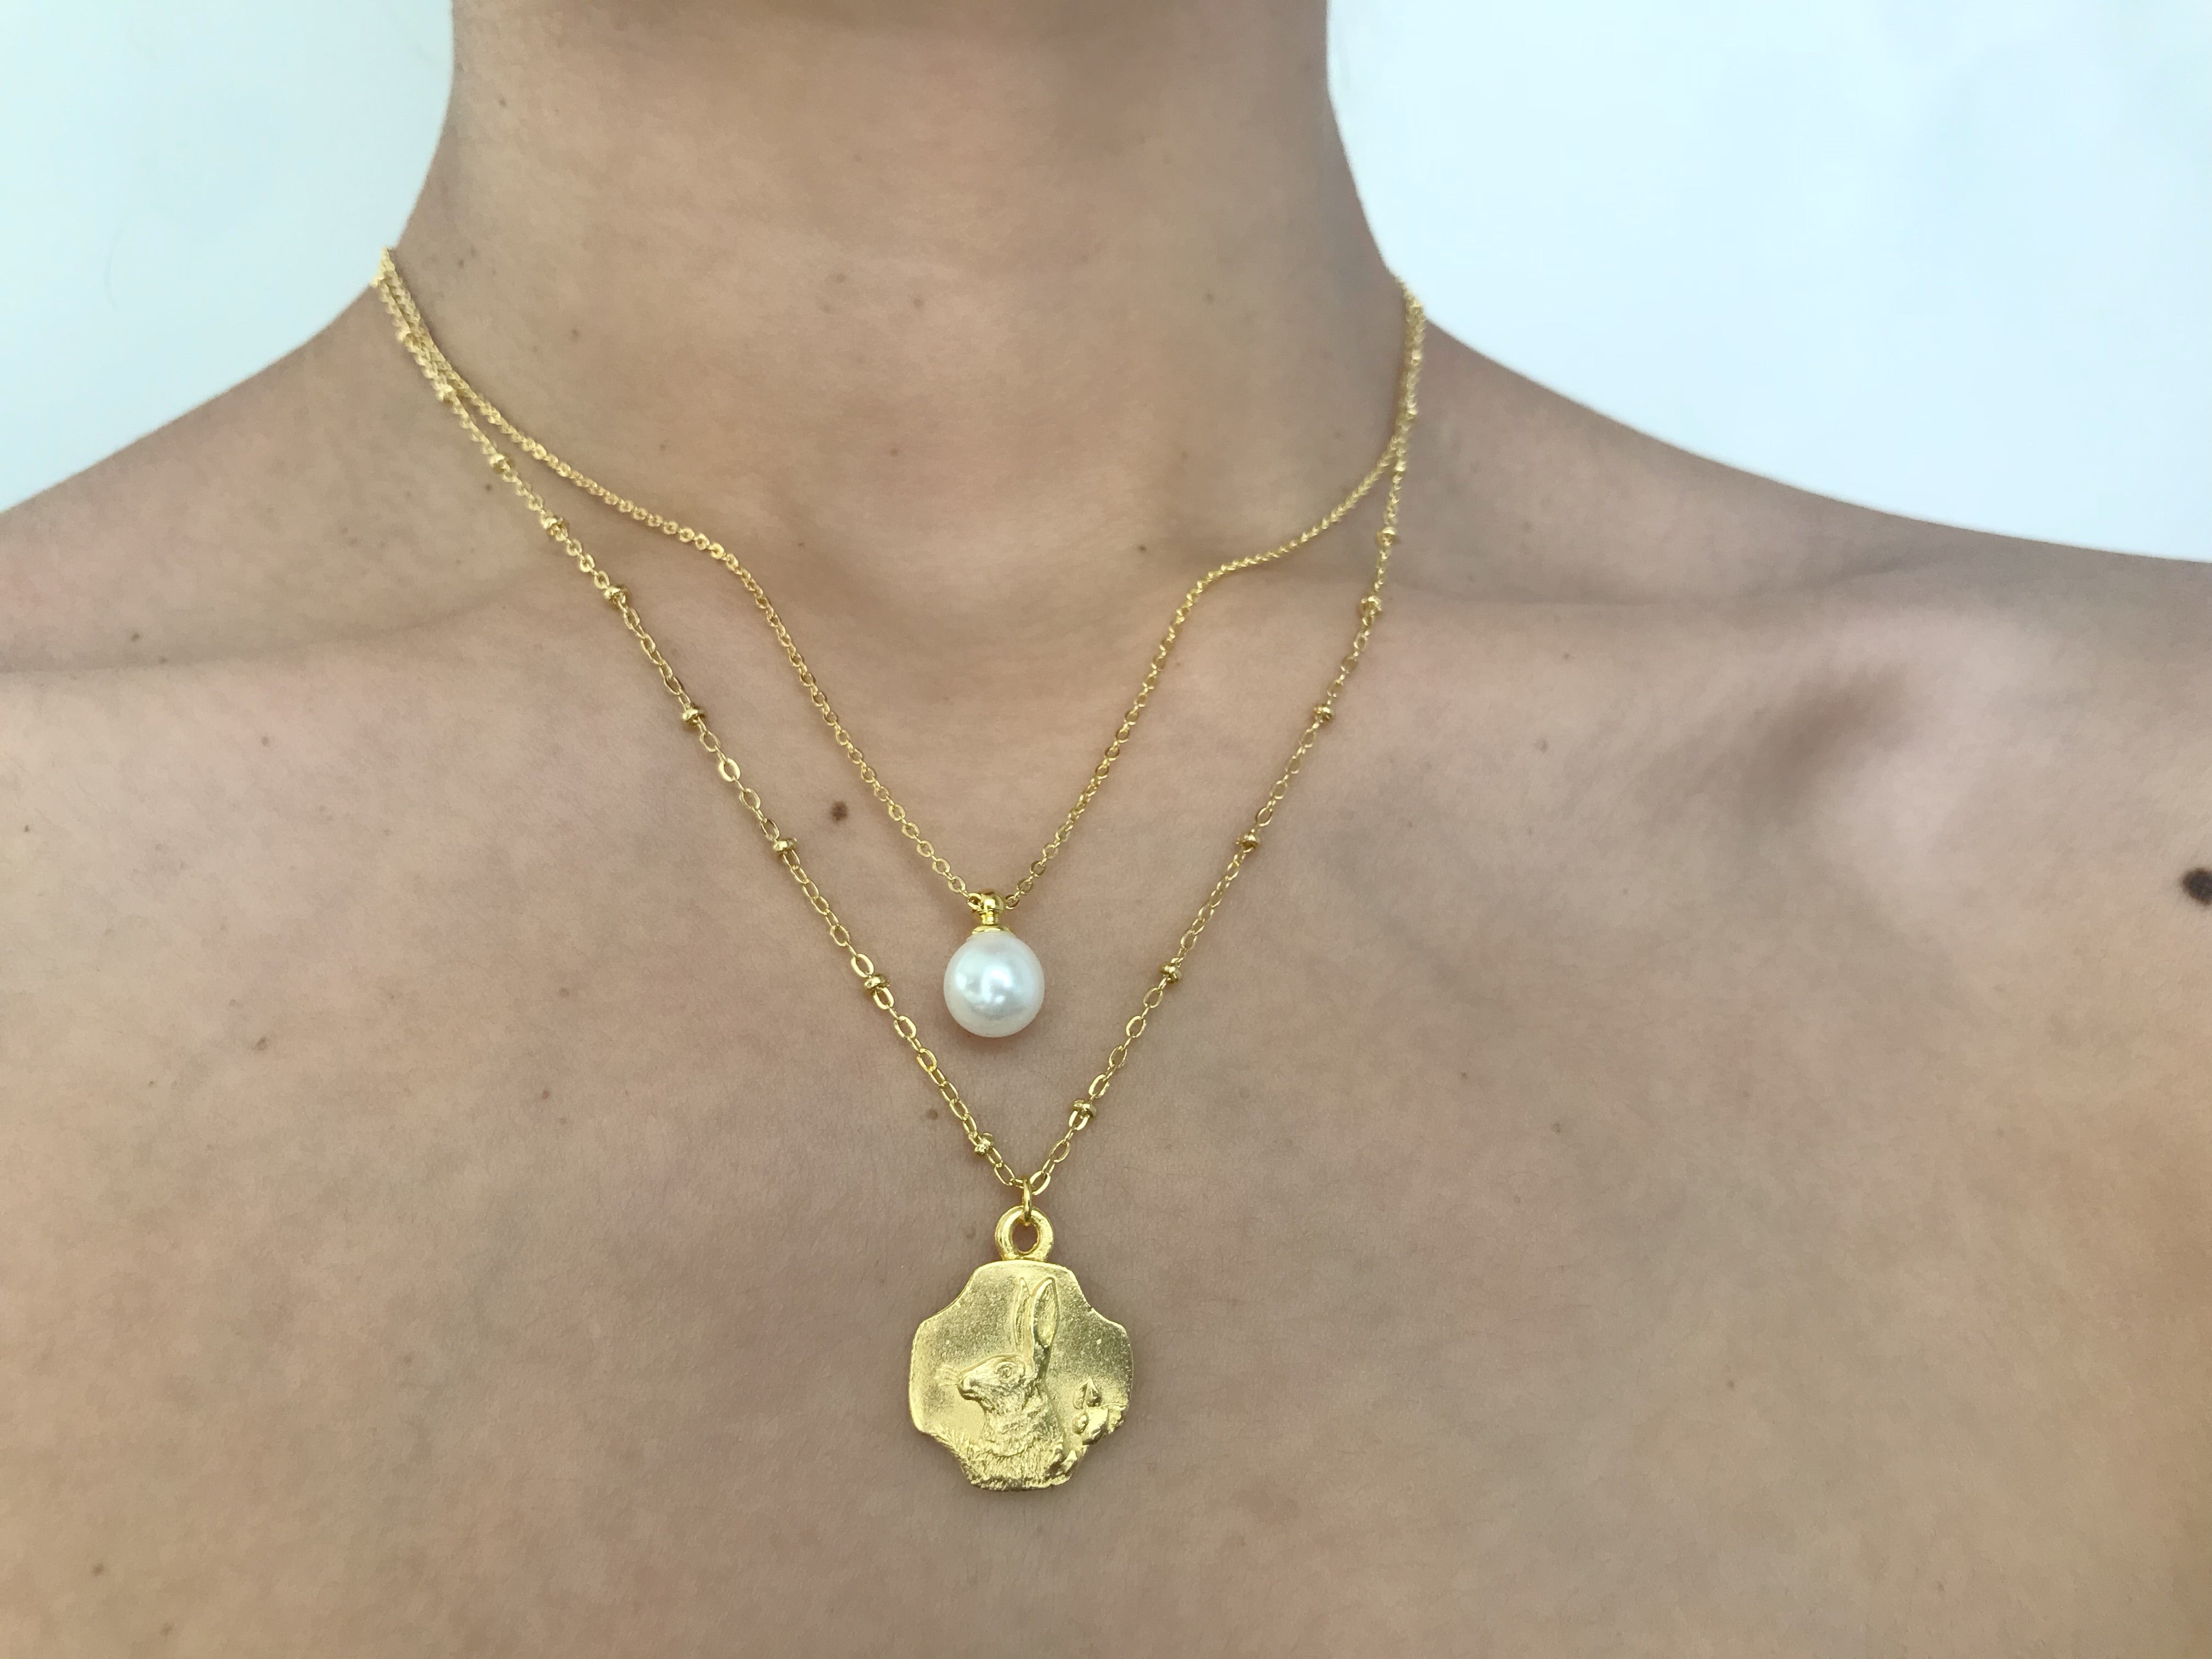 Rabbit jewelry, rabbit necklace, coin jewelry, coin necklace, coin gold necklace